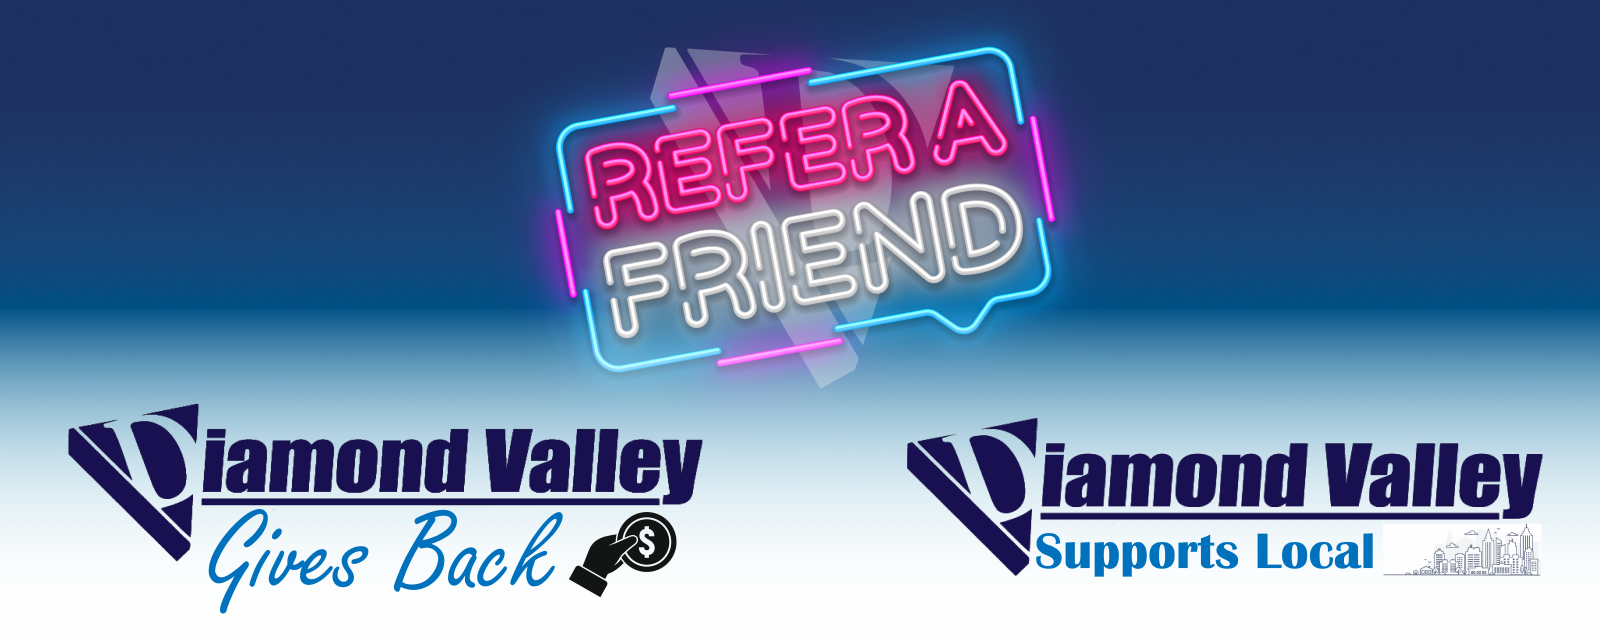 Refer A Friend Is Expanding!